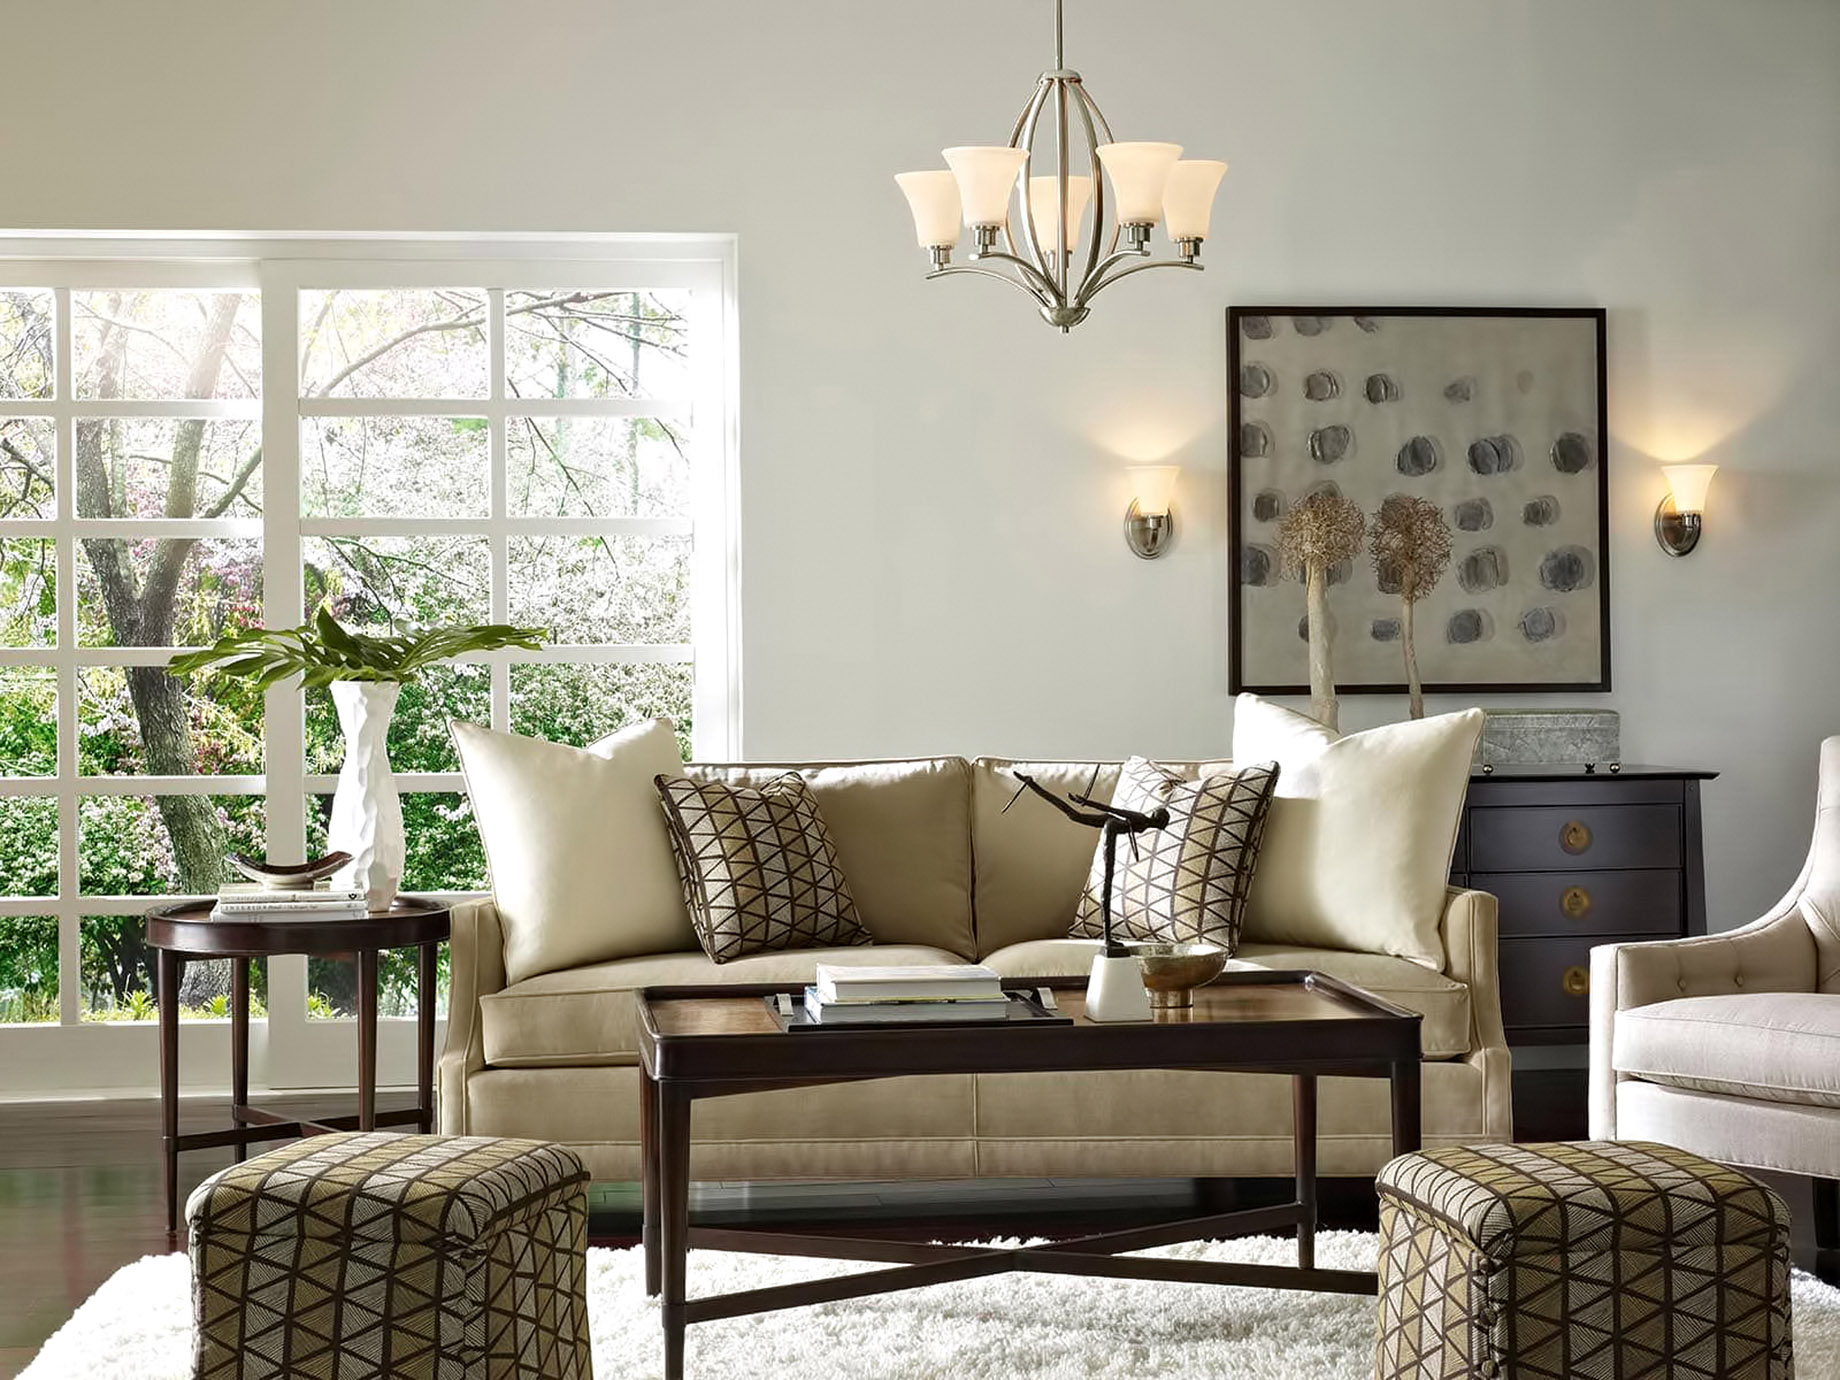 Great Lighting - Upscale Your Living Spaces - How to Make Your Home Look and Feel Luxurious